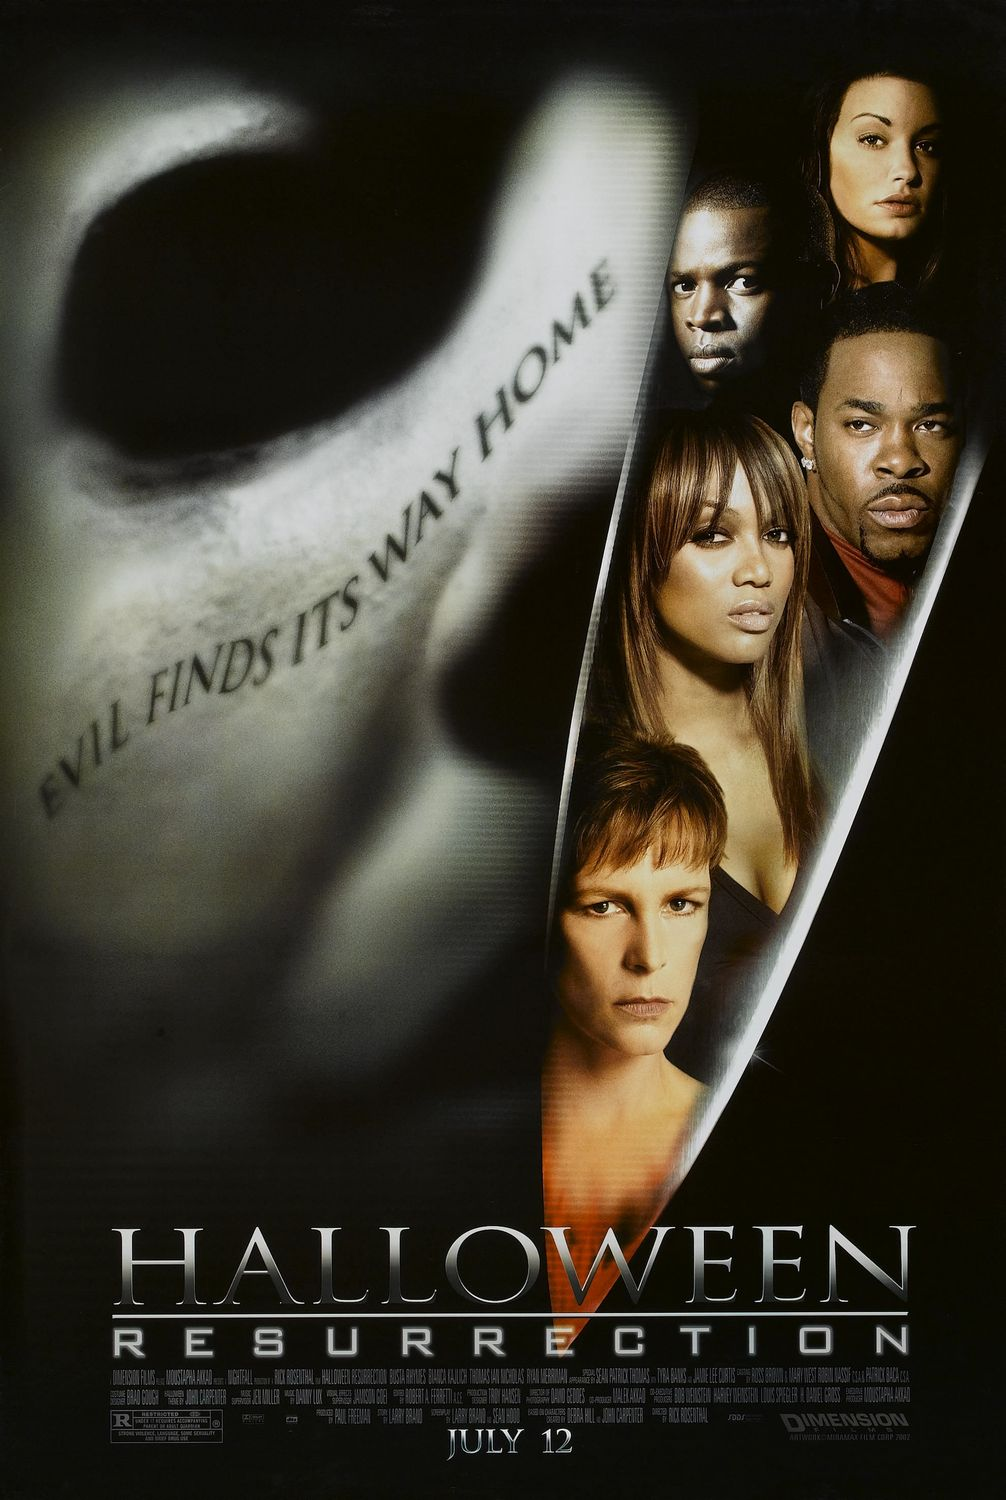 Halloween-Resurrection-large.jpg